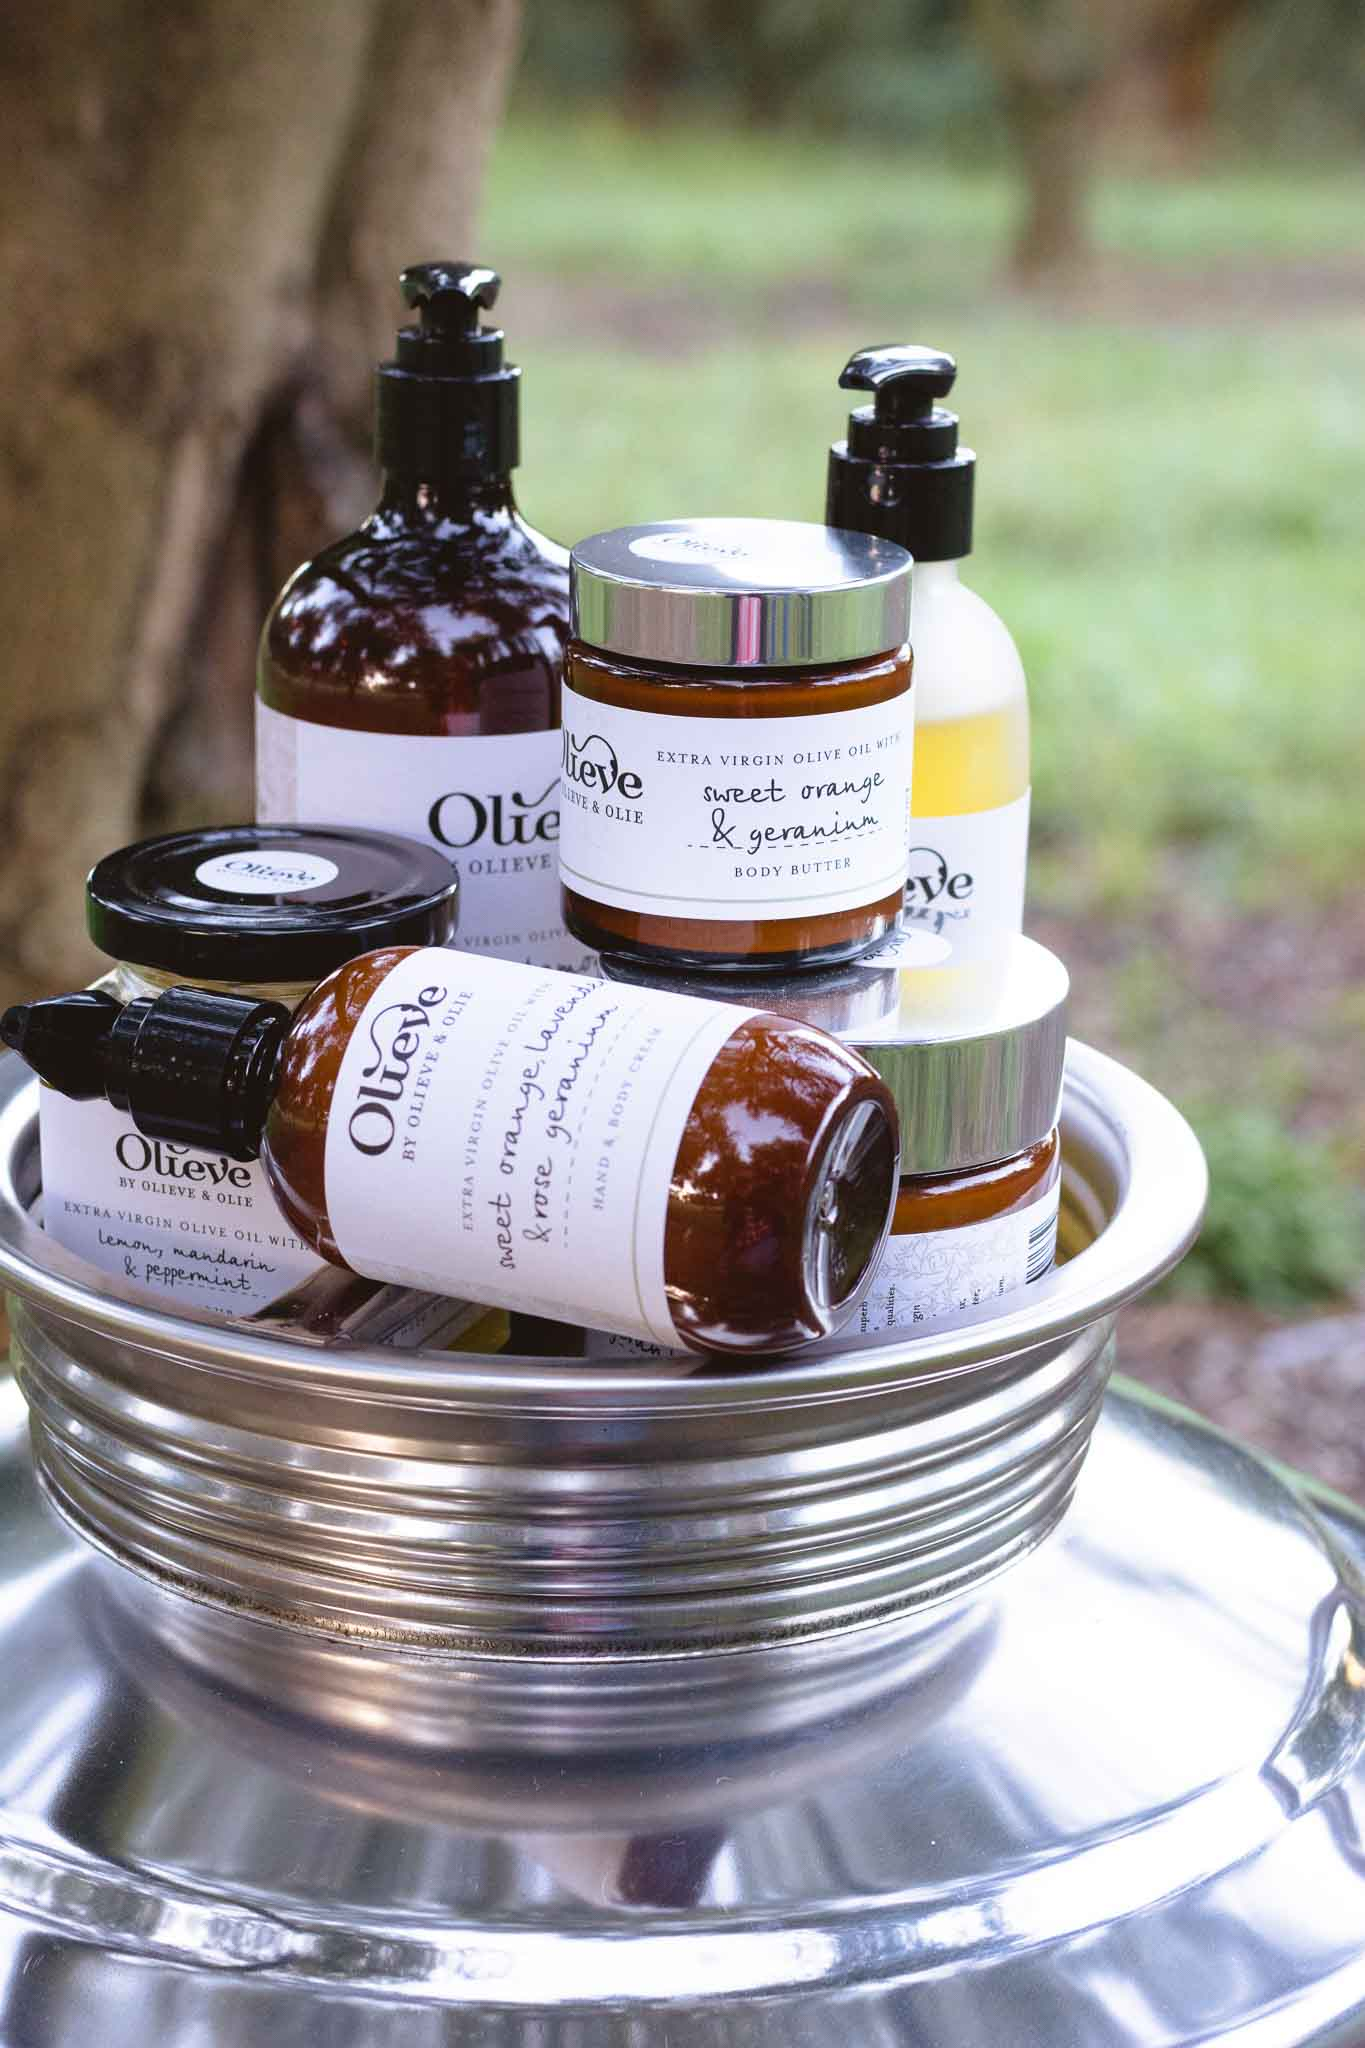 olieve and olie products